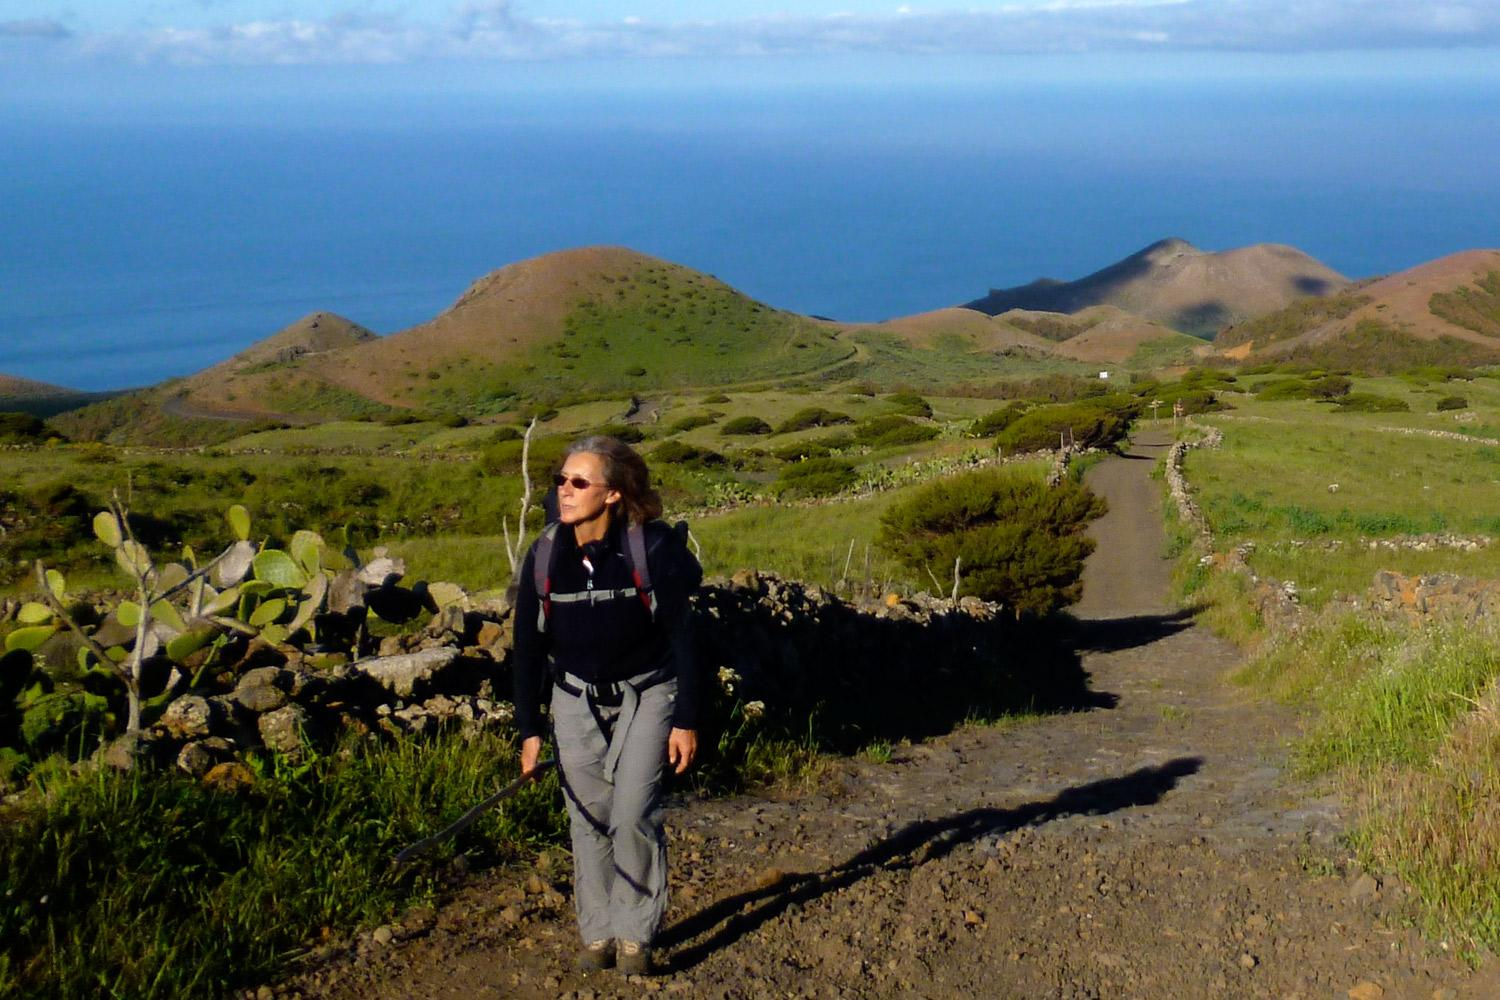 Explore the volcanic landscape of El Hierro on an independent walking tour